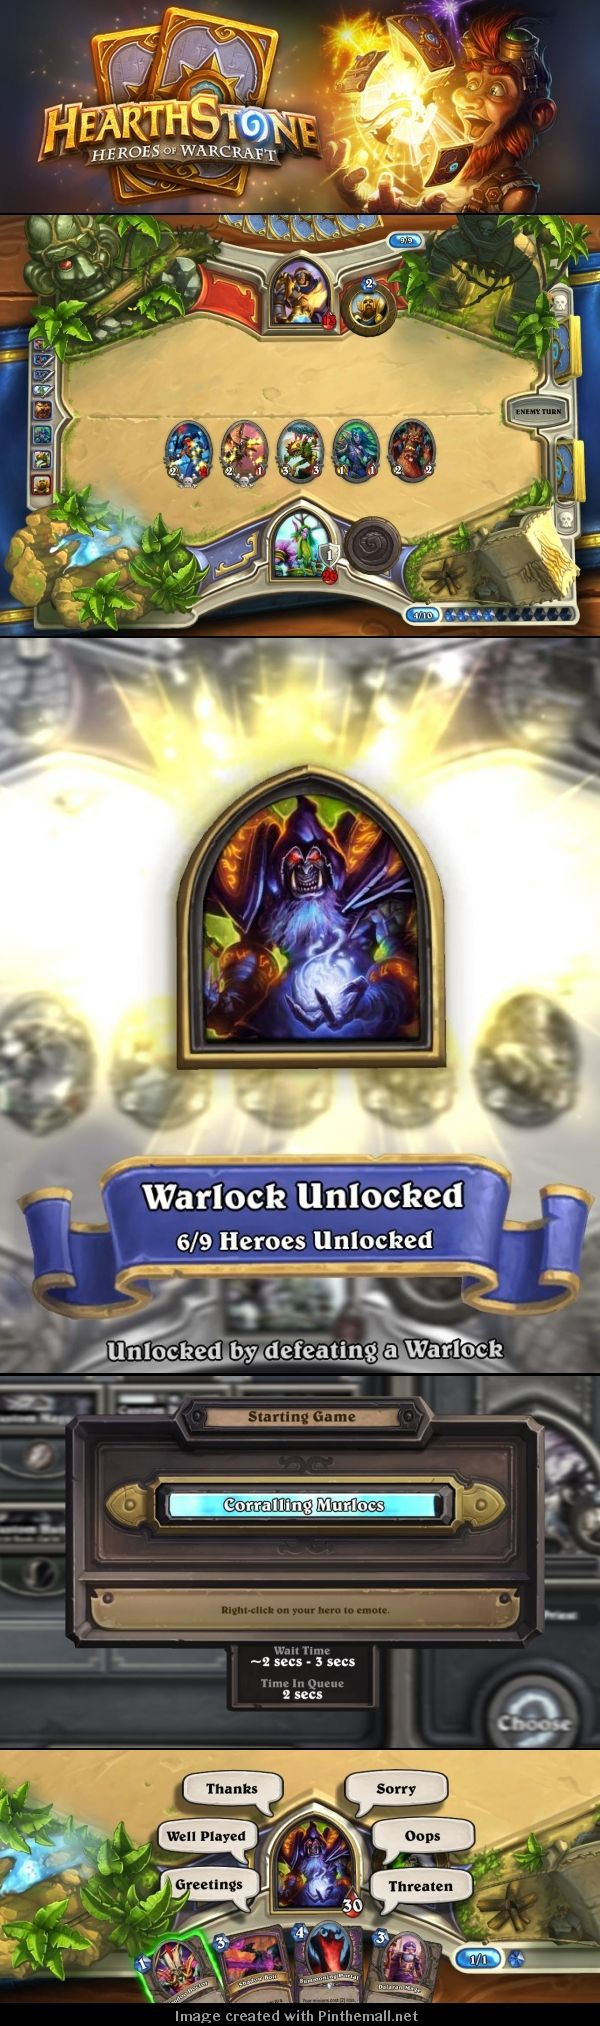 3 Reasons Why 'Hearthstone' Will Be Your Kids' Next Favorite Game (and Yours Too)